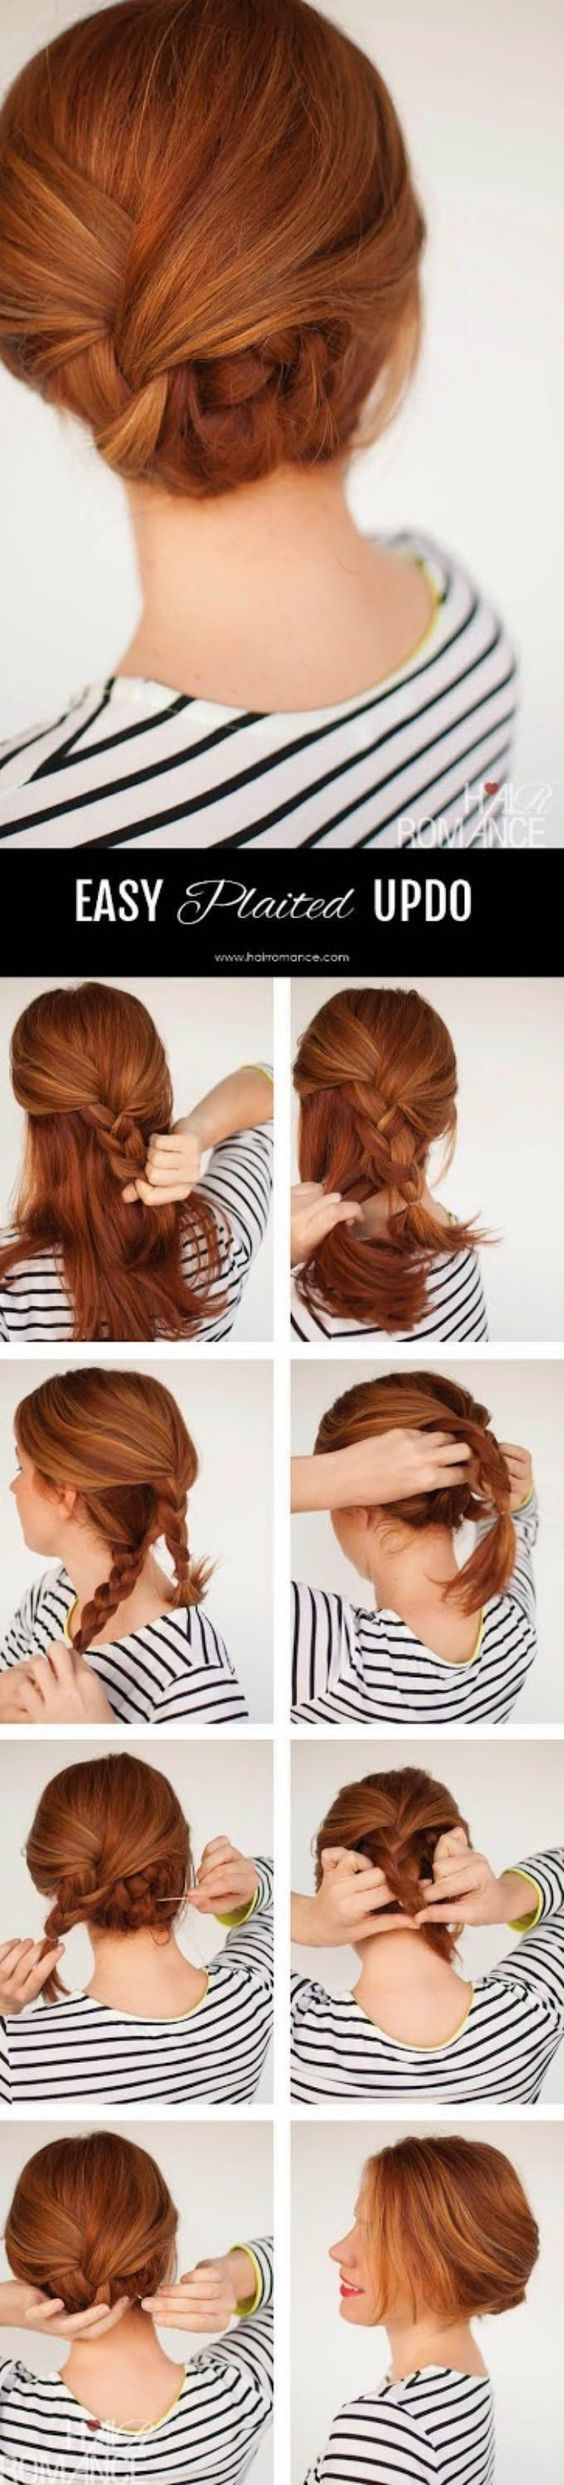 16 Easy Updo Hair Tutorials for the Season